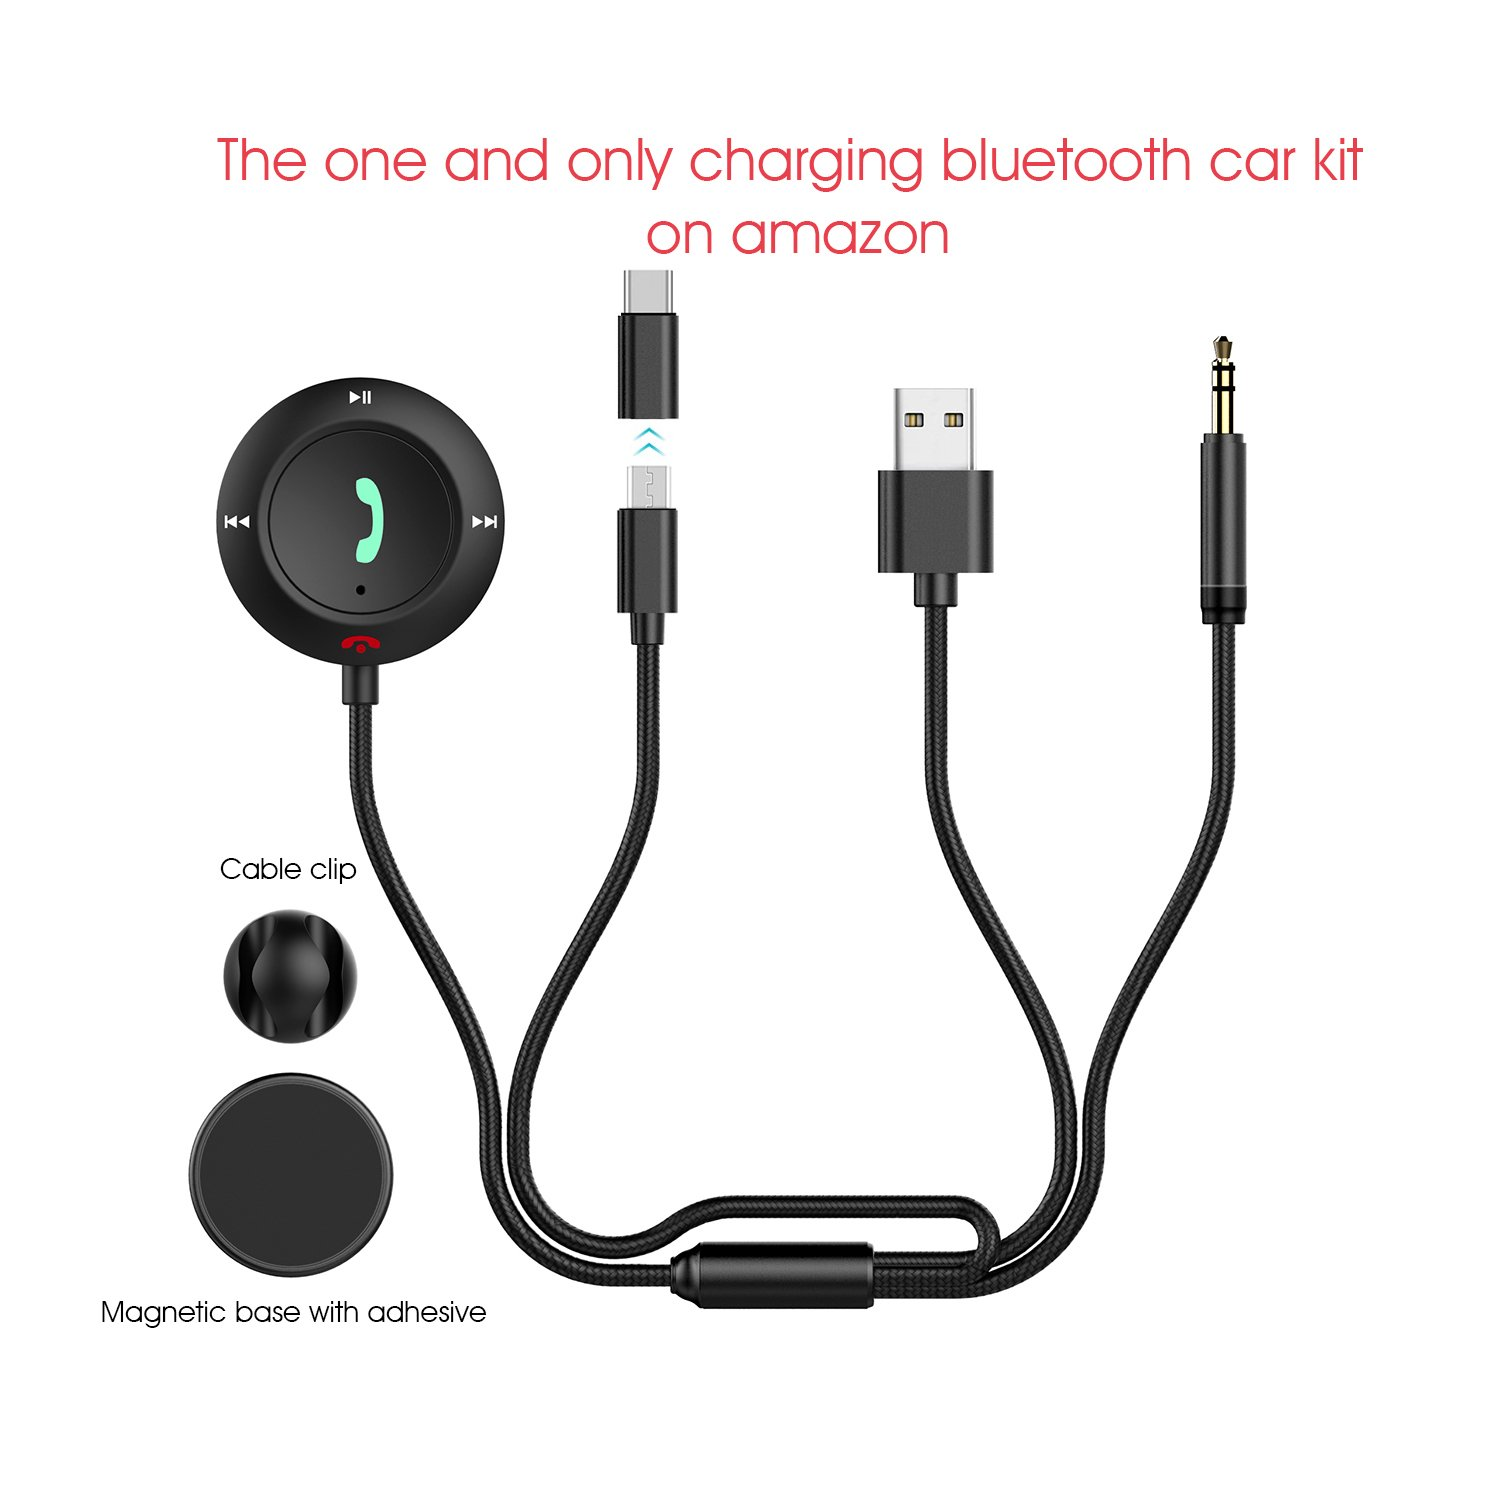 MiCar Bluetooth Charging Car Kit, Hands-free Wireless Phone Call & Bluetooth Aux Receiver with USB & Type C Charging Cable, Nylon 3.5mm Aux Input Cable, Built-in Mic for Car Home Stereo (USB+Type C)